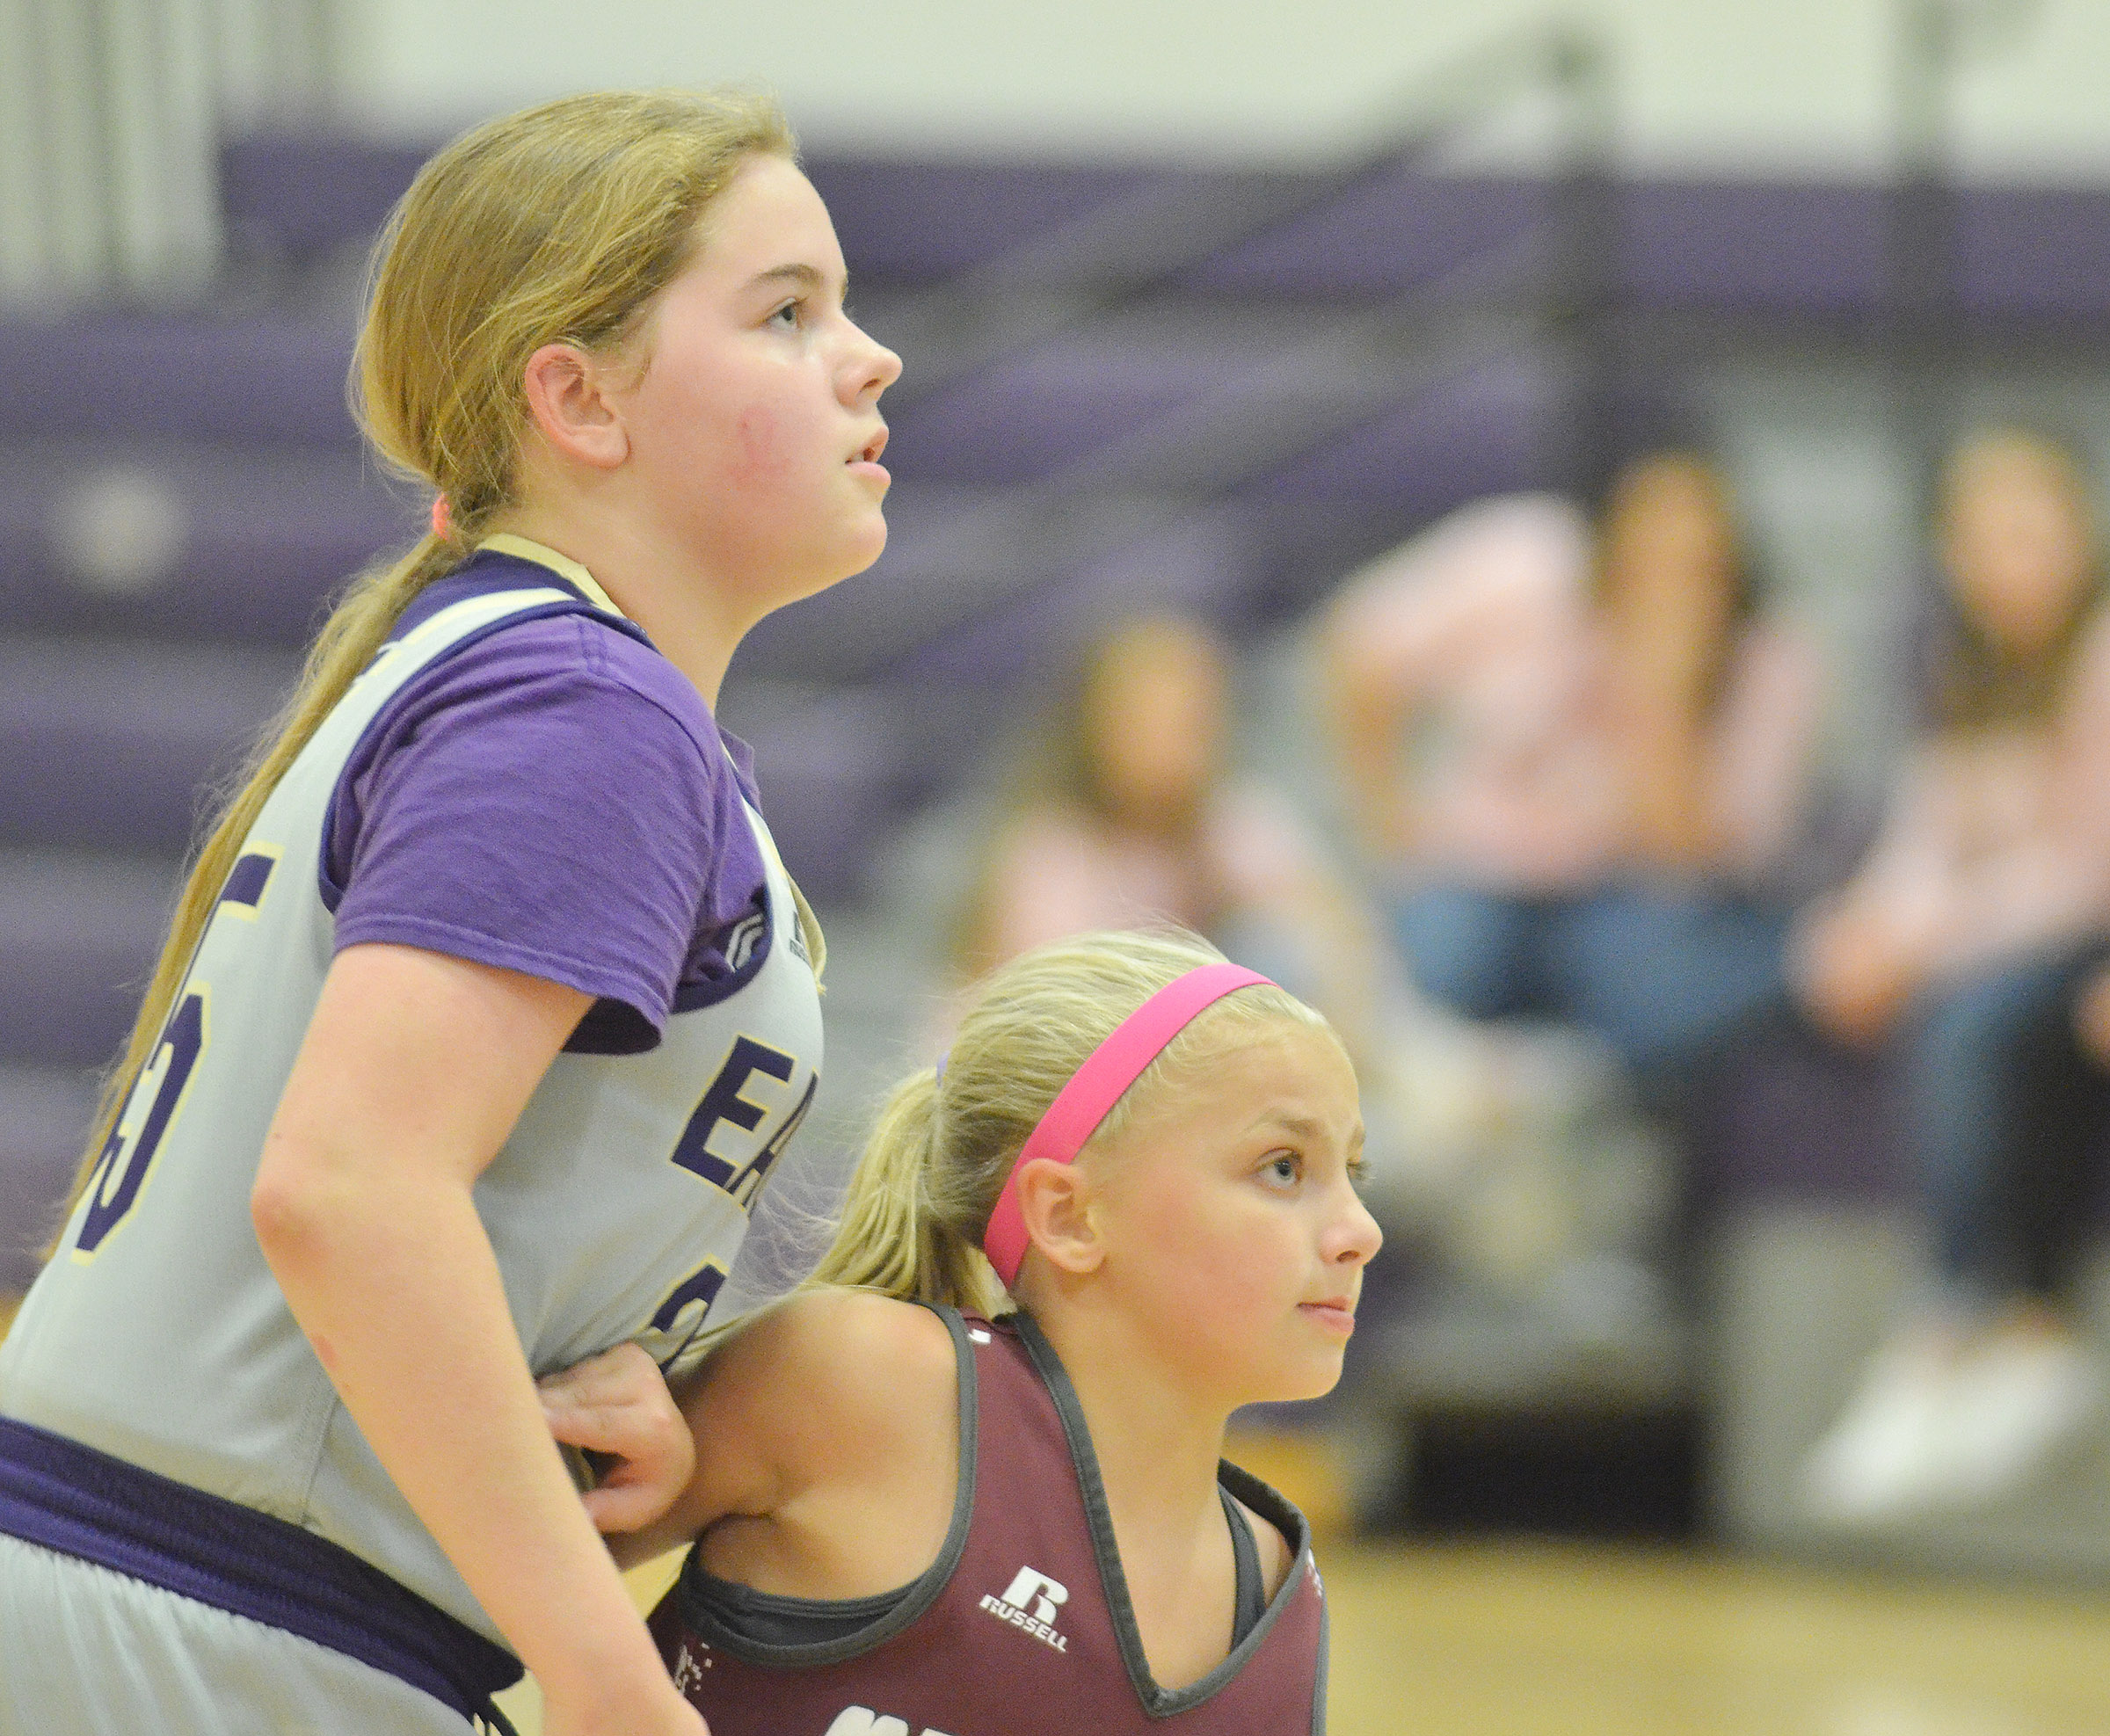 CMS sixth-grader Layla Steen watches the ball.